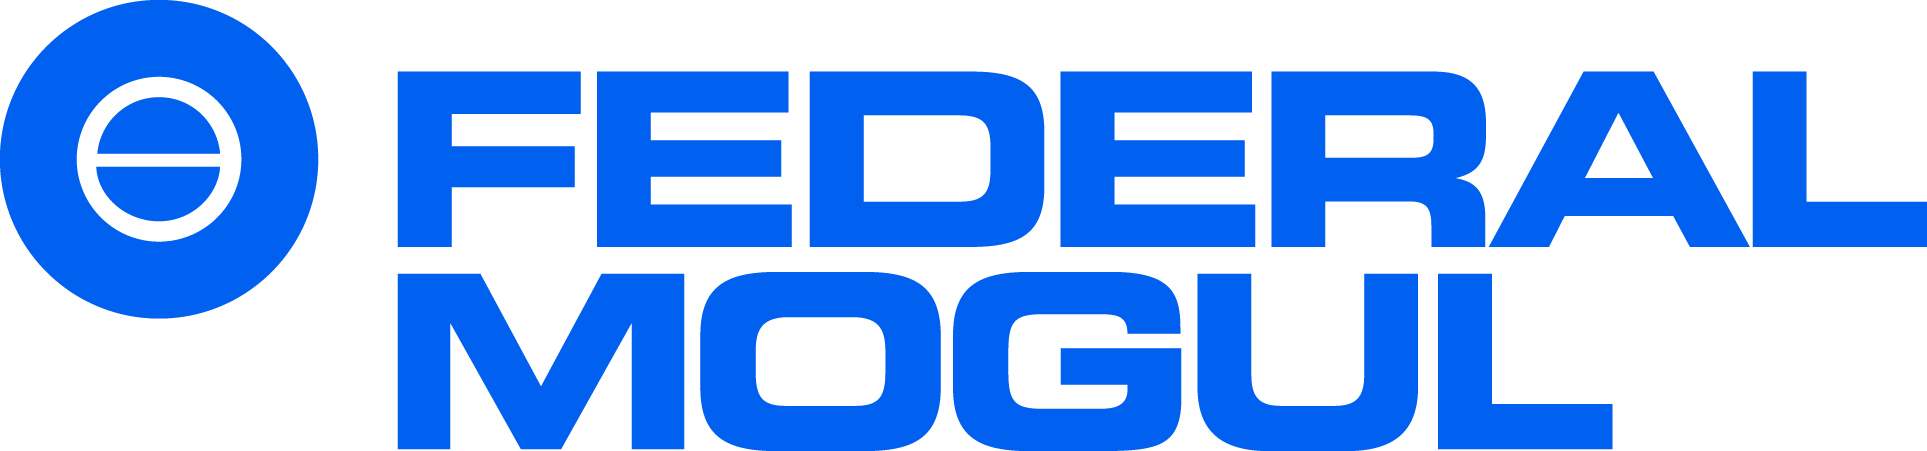 EDDY'S GARAGE - logo Federal Mogul